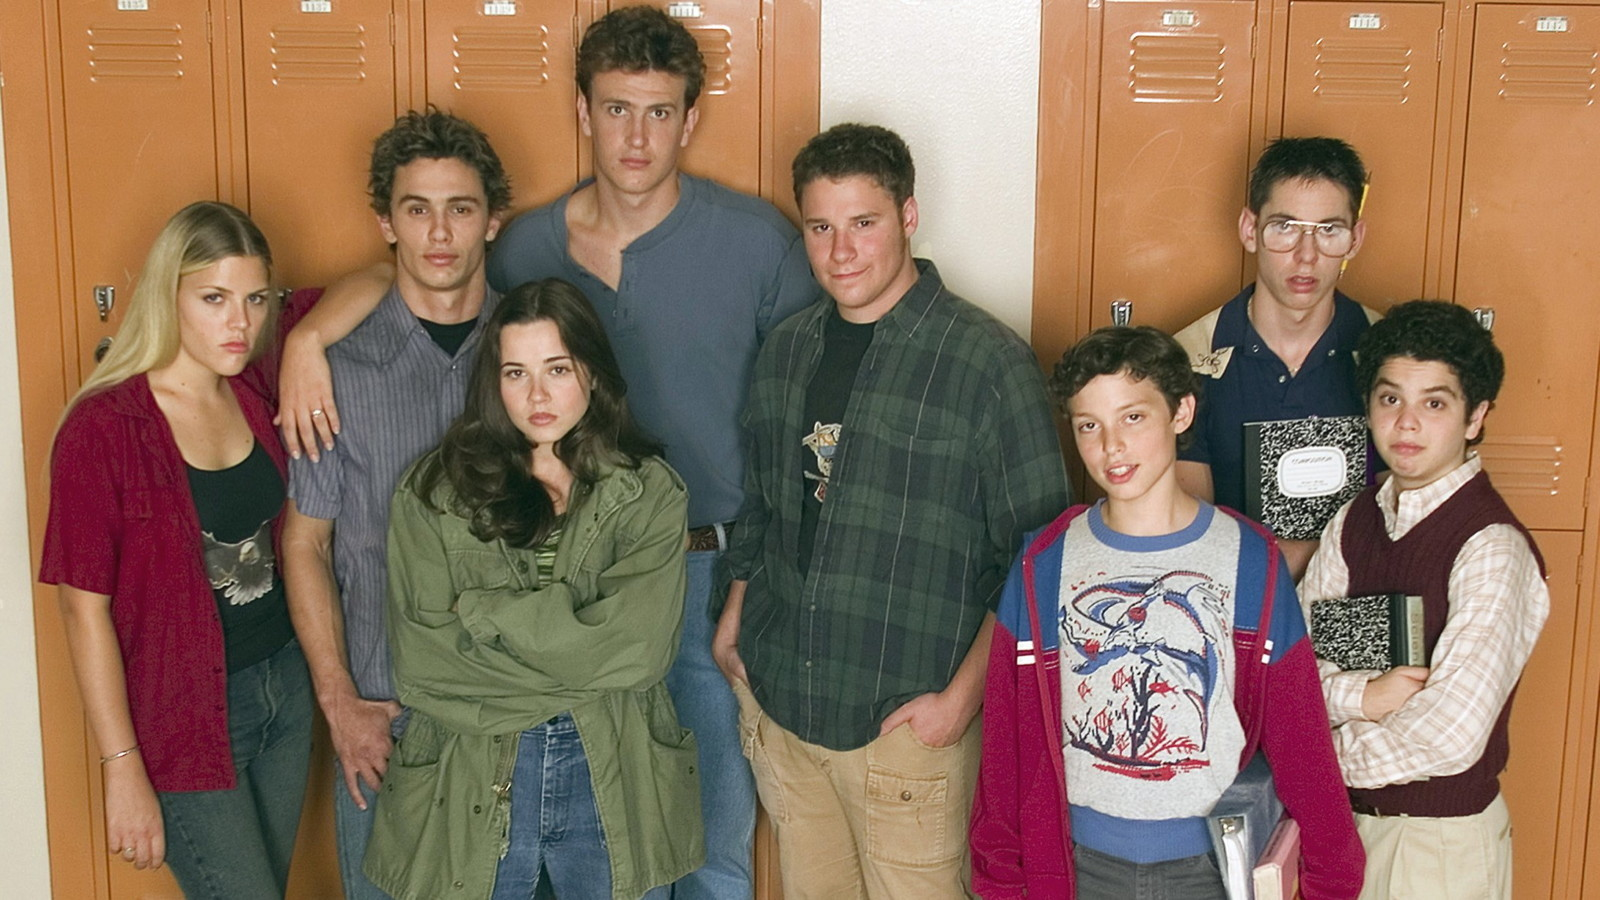 FREAKS AND GEEKS (US TV SERIES)